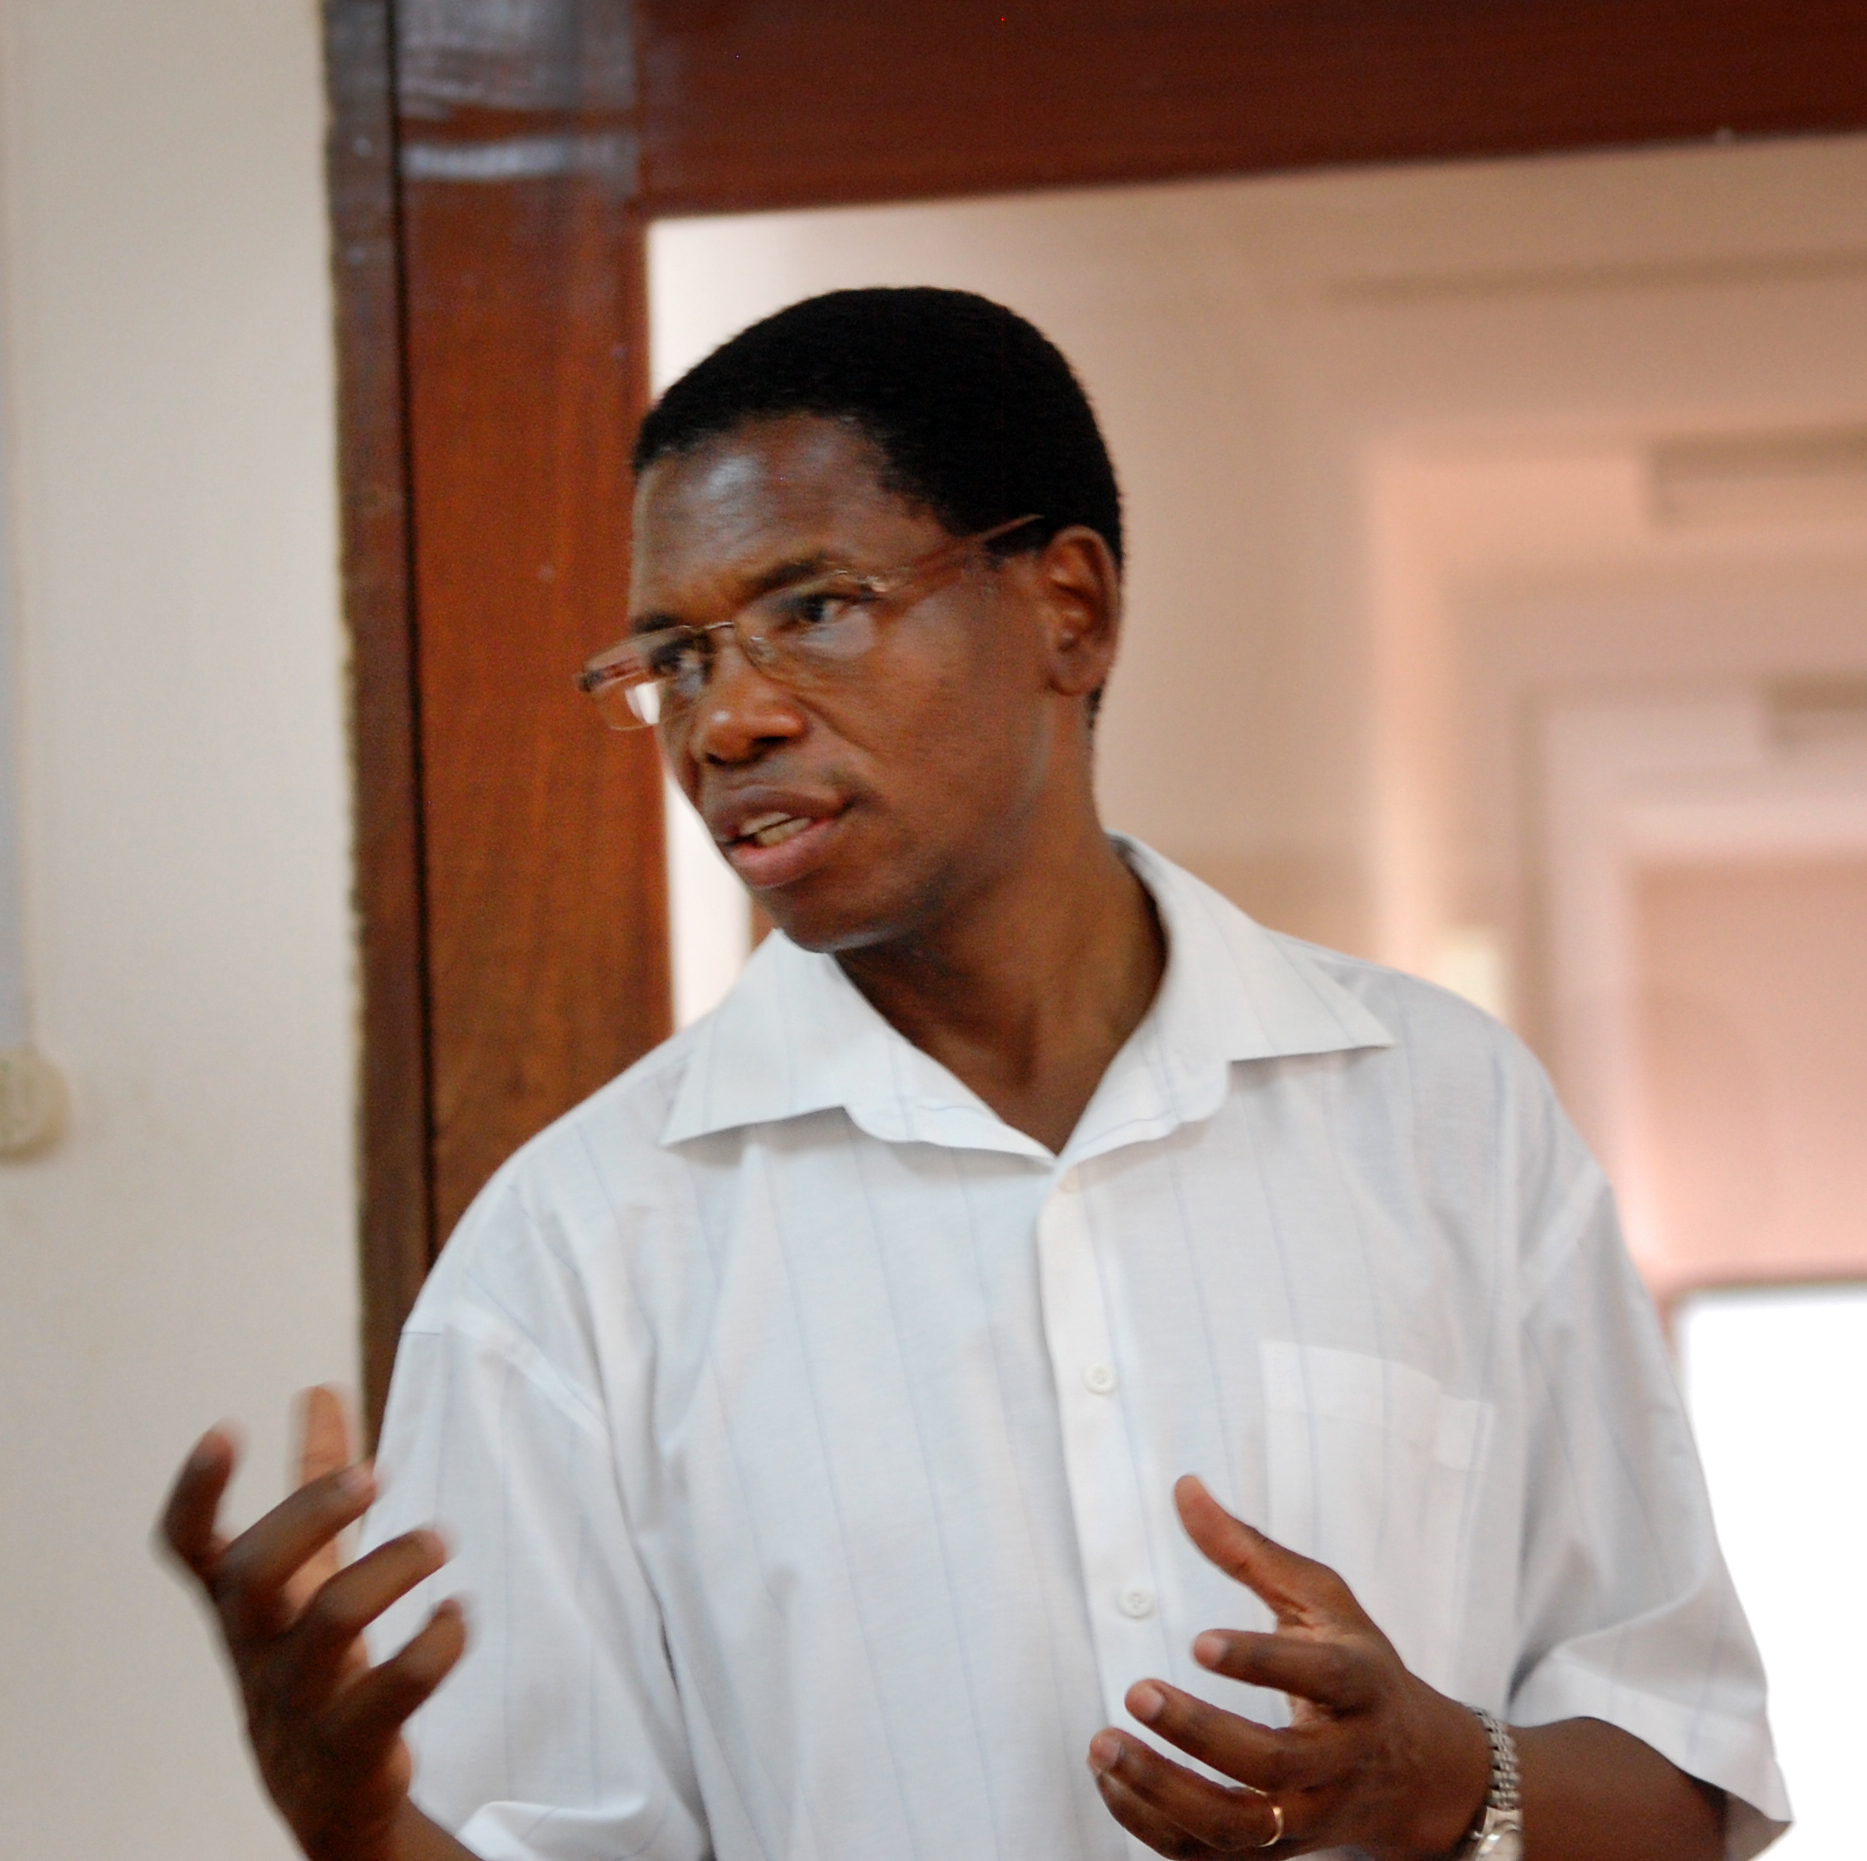 The Rev. Alindo Romão, health coordinator for the Center of Hope in Chicuque, Mozambique speaks to visitors during a 2015 site visit from the Connectional Table. Photo by Keeton Bigham-Tsai